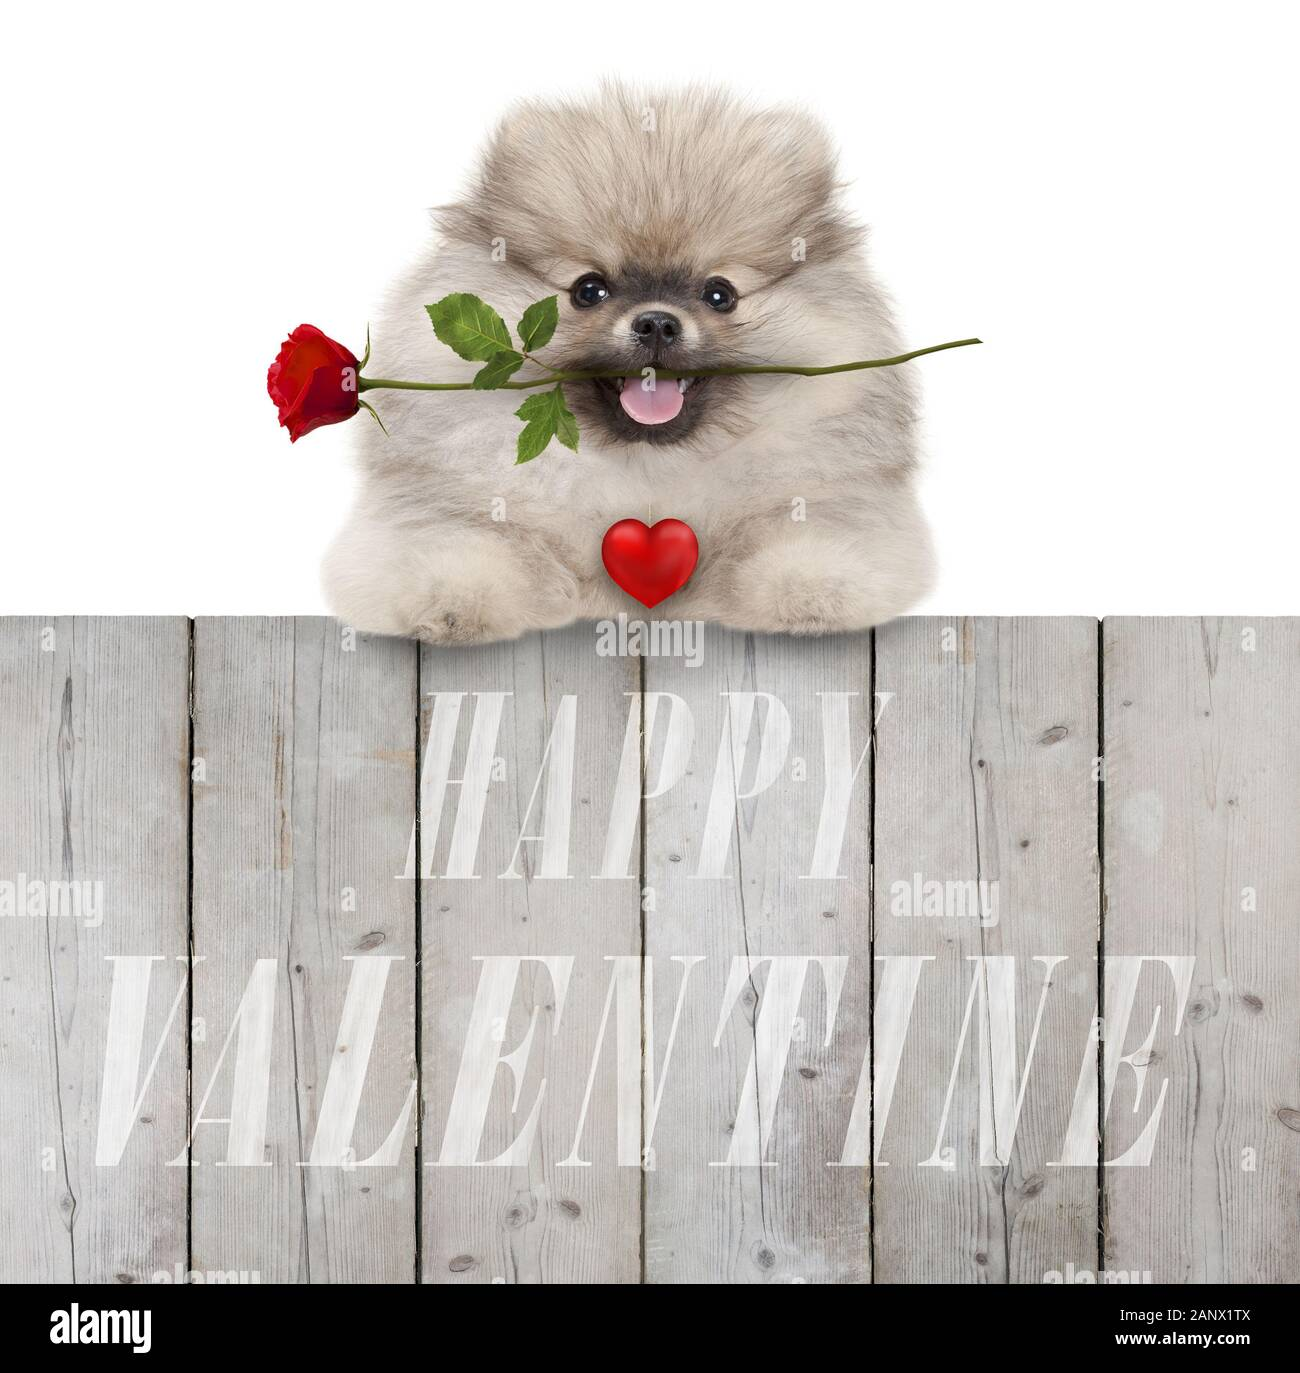 cute smiling pomeranian spitz puppy dog with red heart and rose, and text happy valentine, hanging with paws on wooden fence, isolated on white backgr Stock Photo